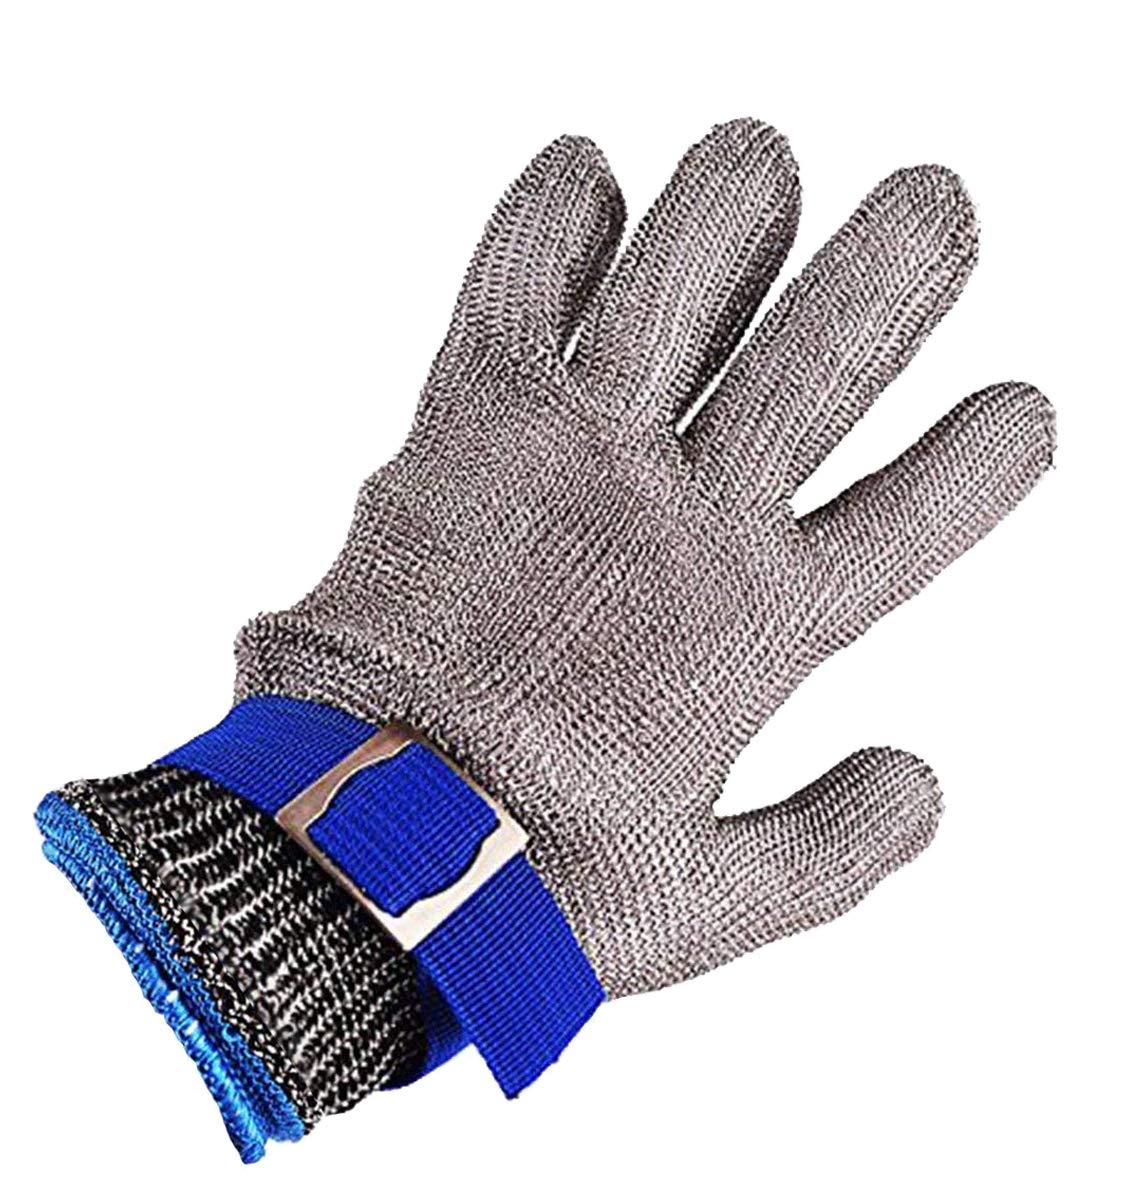 Safety Cut Proof Stab Resistant Imported 316 Stainless Steel Metal Mesh Butcher Glove Size L High Performance Level 5 Protection